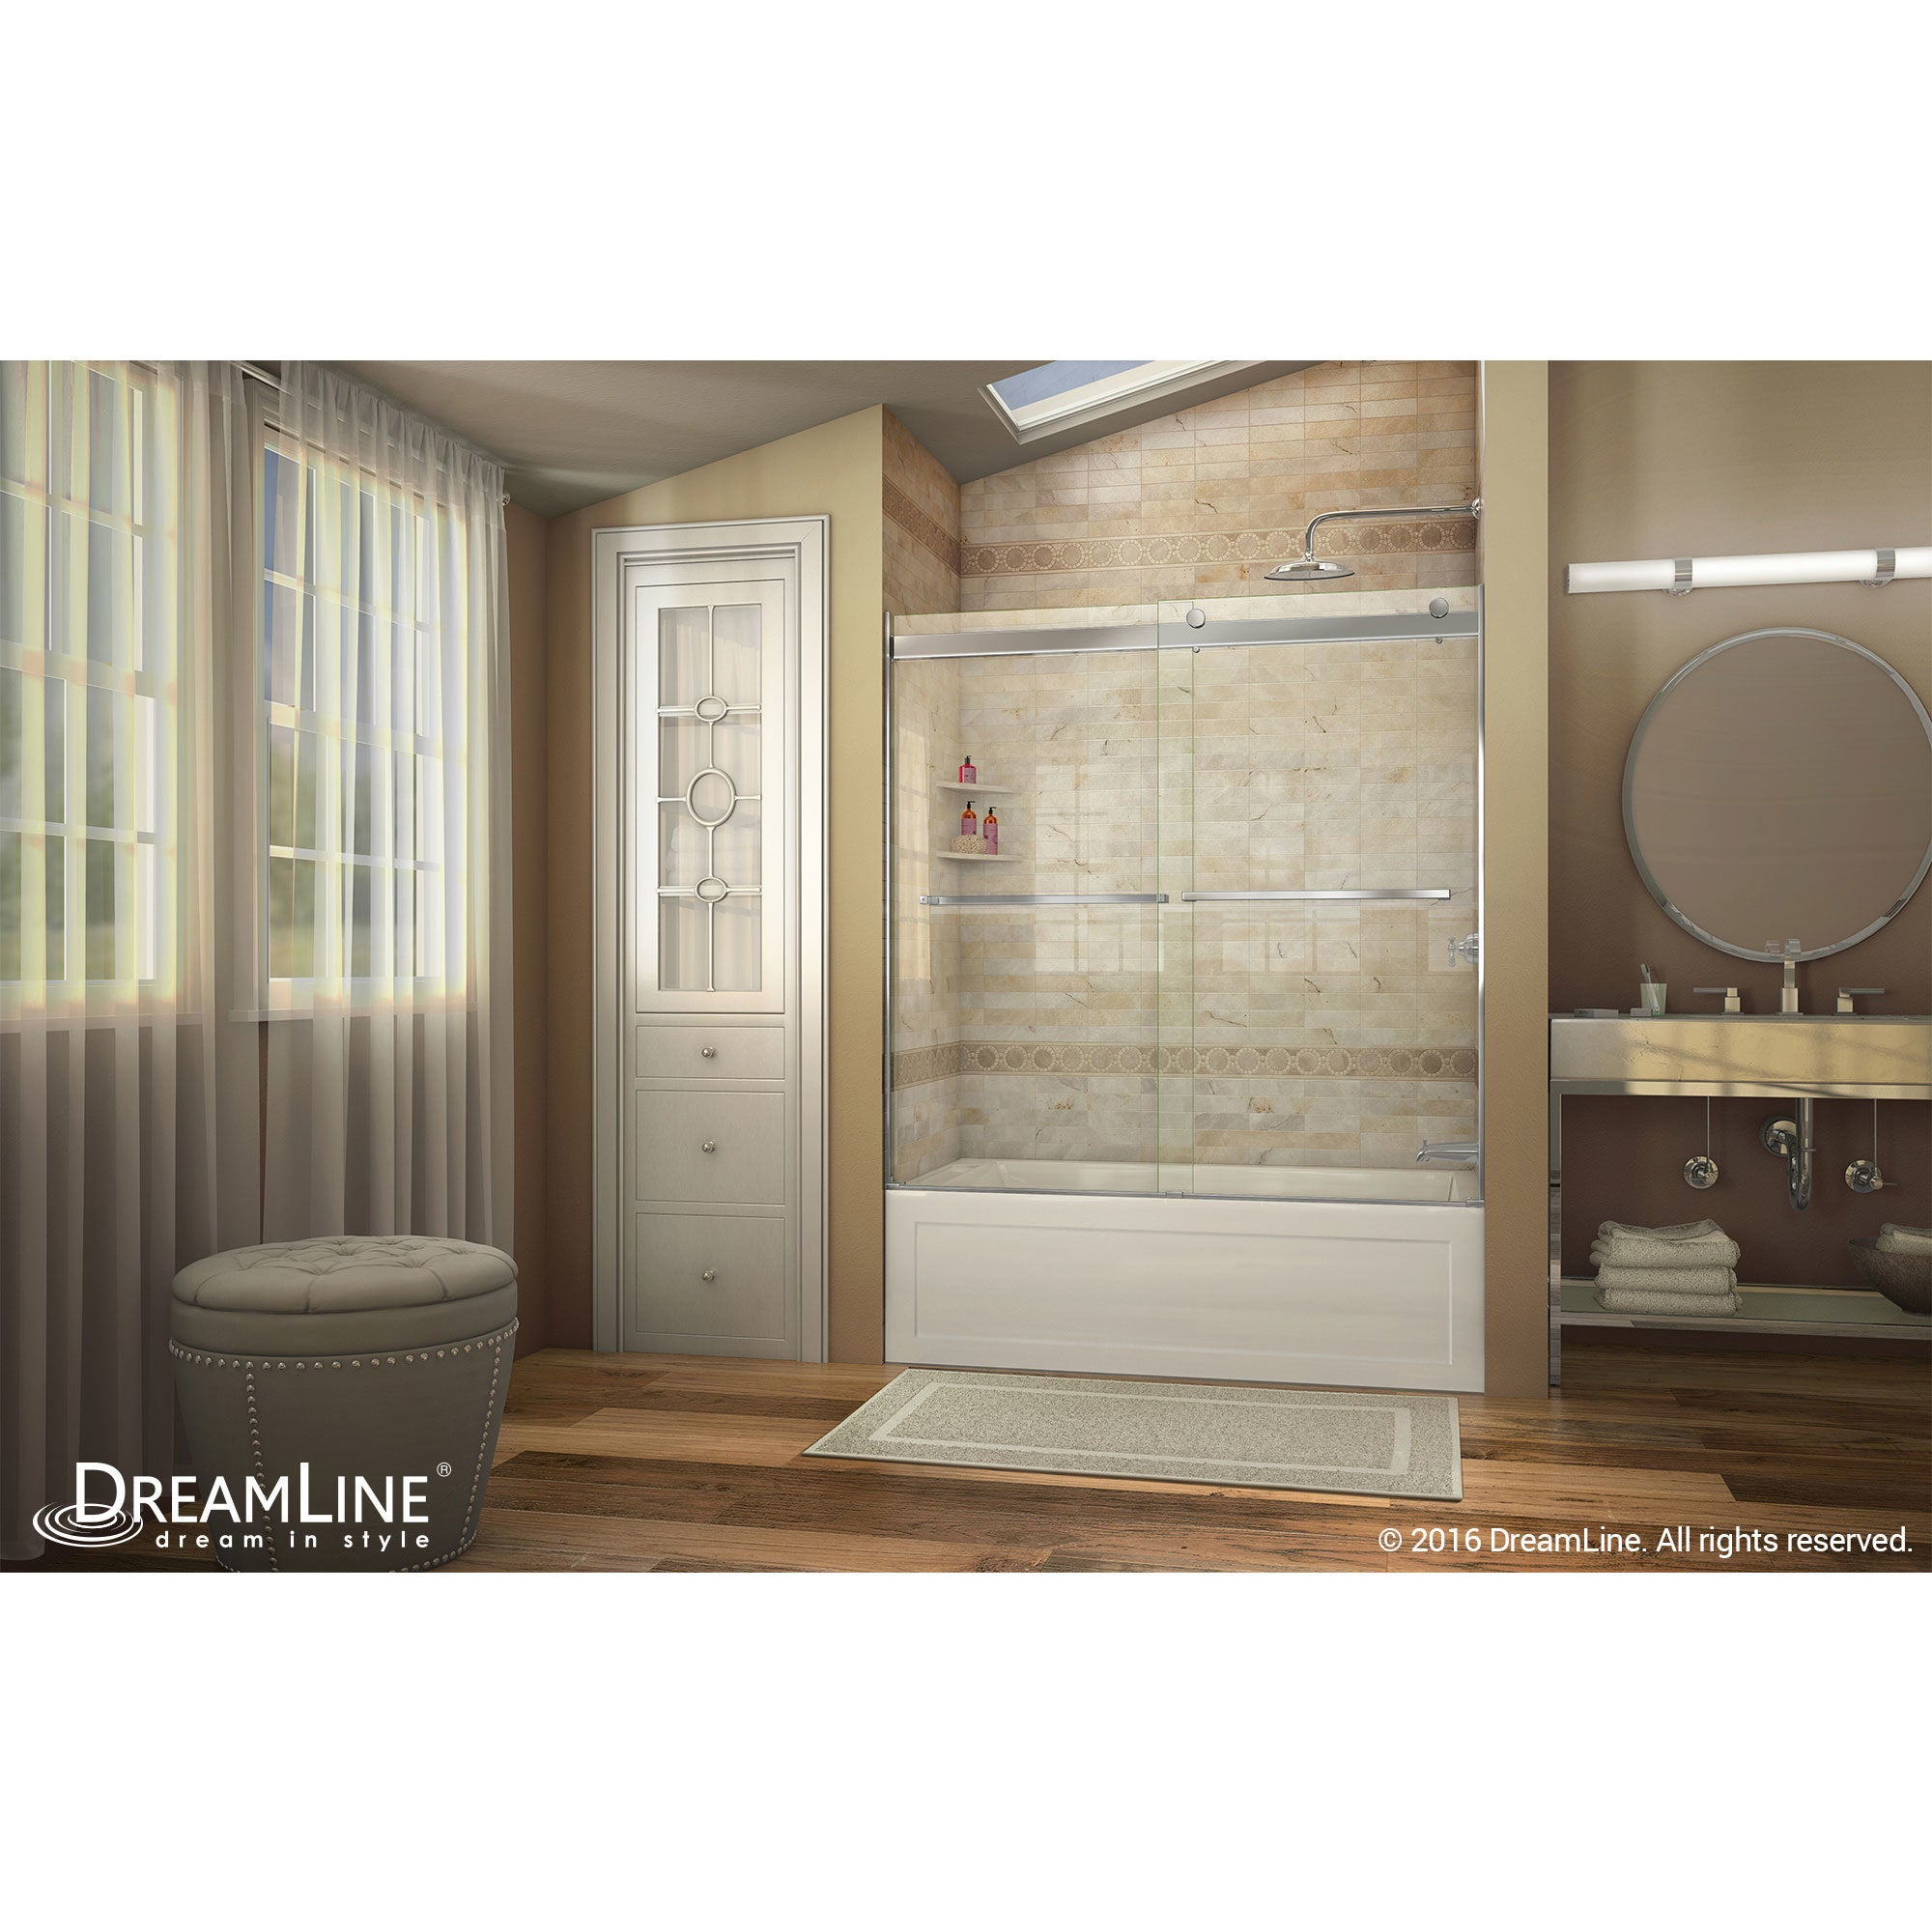 DreamLine Essence 56 to 60 in. Frameless Bypass Tub Door - Free ...